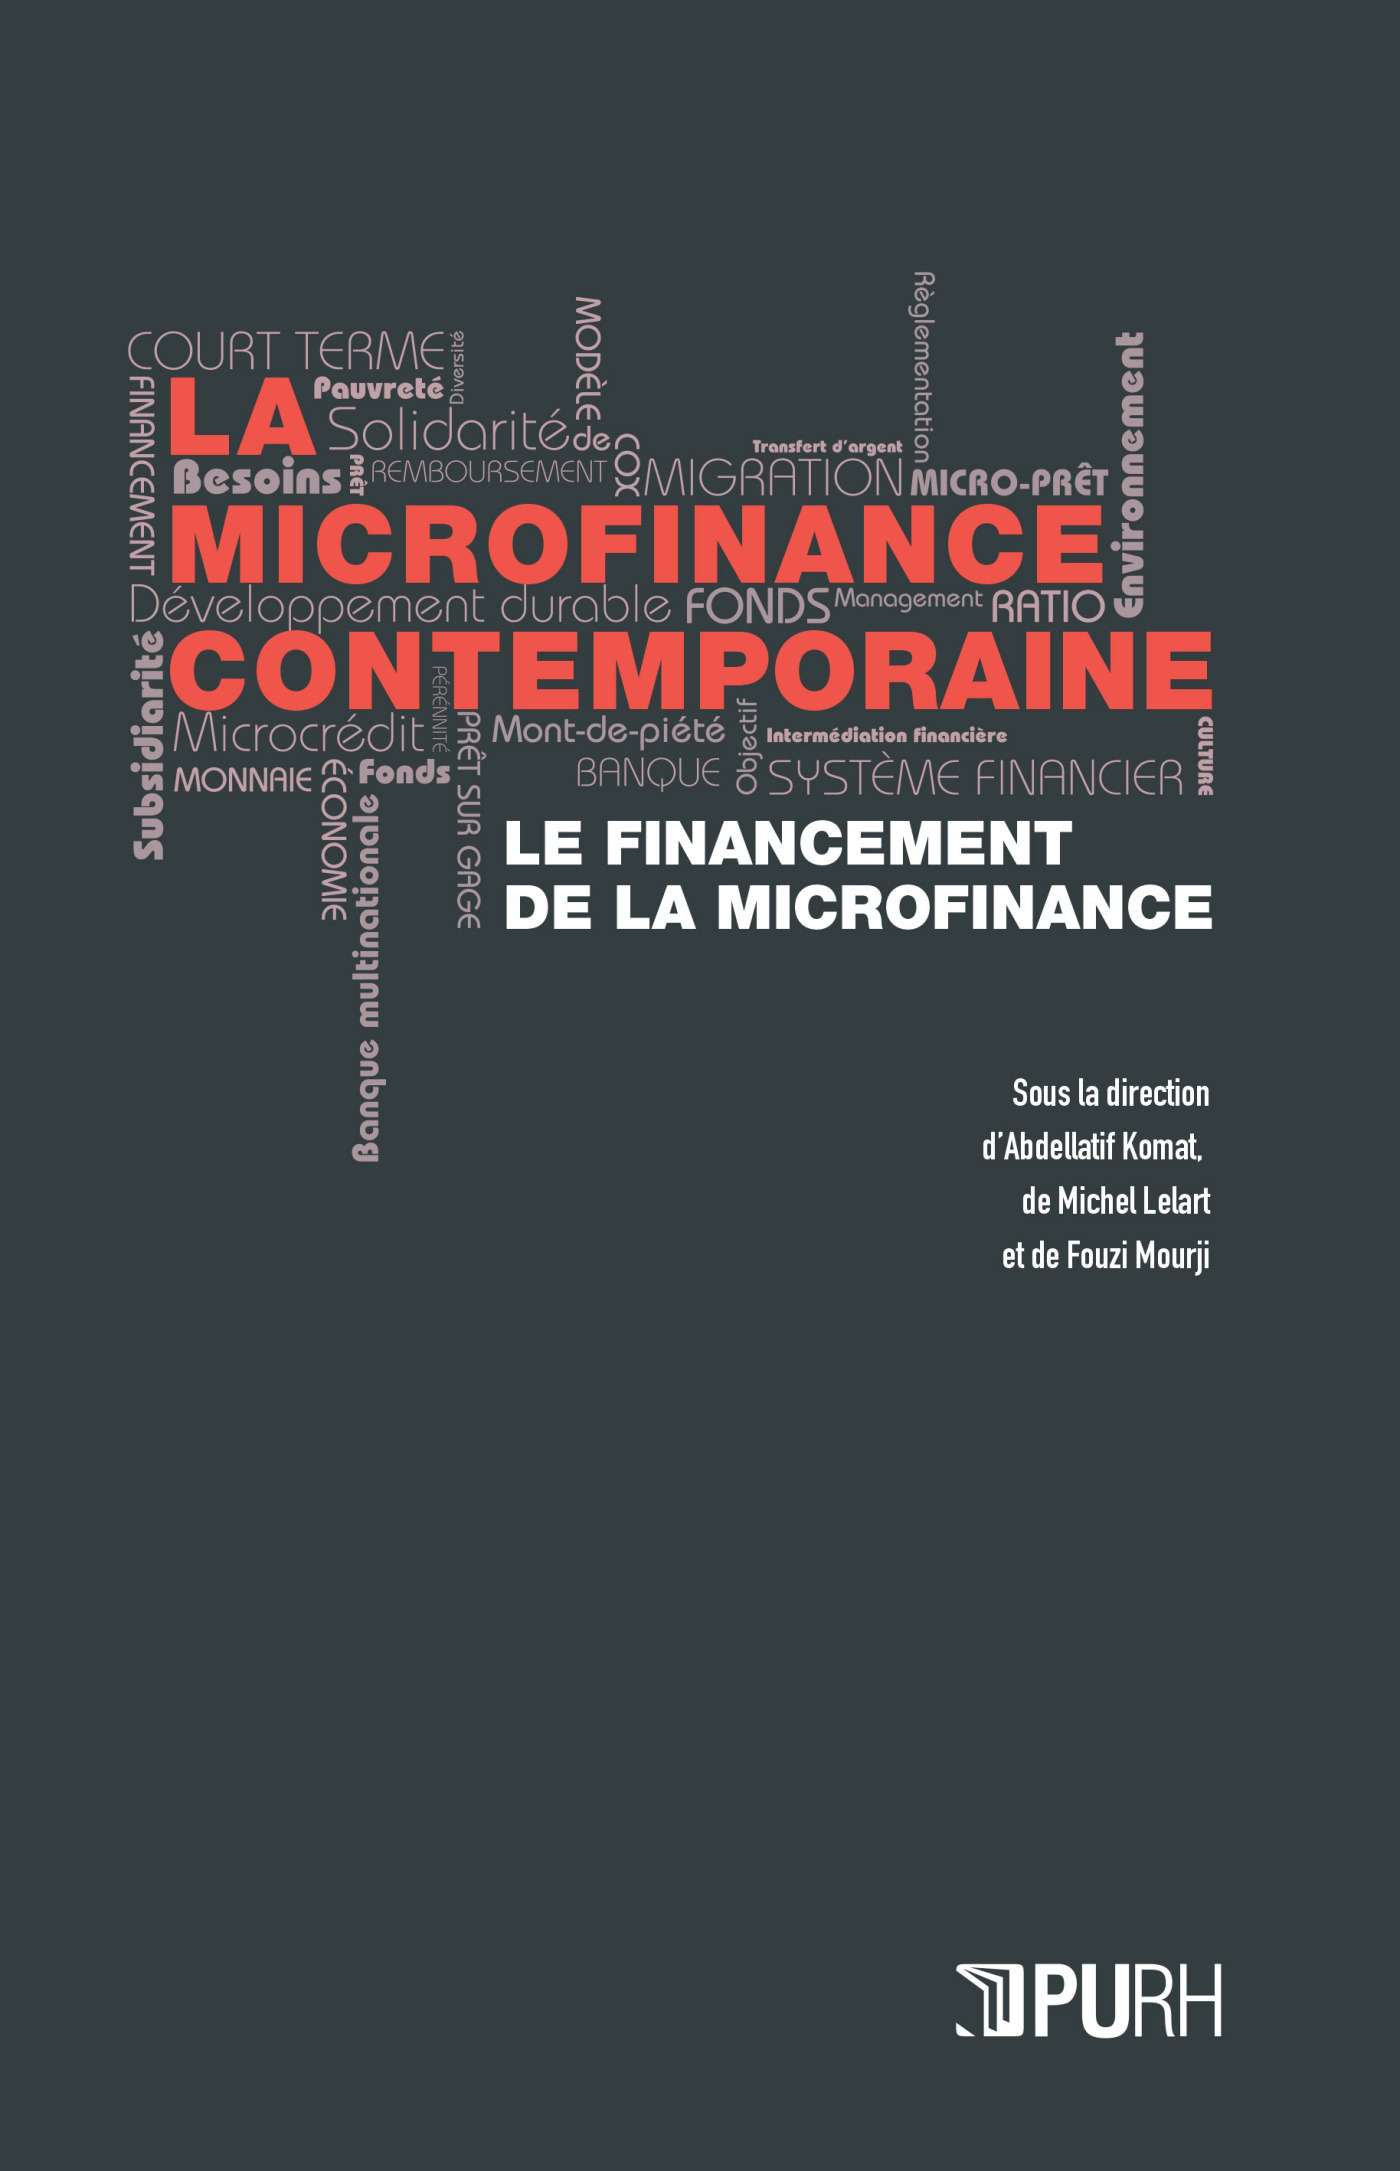 LA MICROFINANCE CONTEMPORAINE - III. LE FINANCEMENT DE LA MICROFINANC